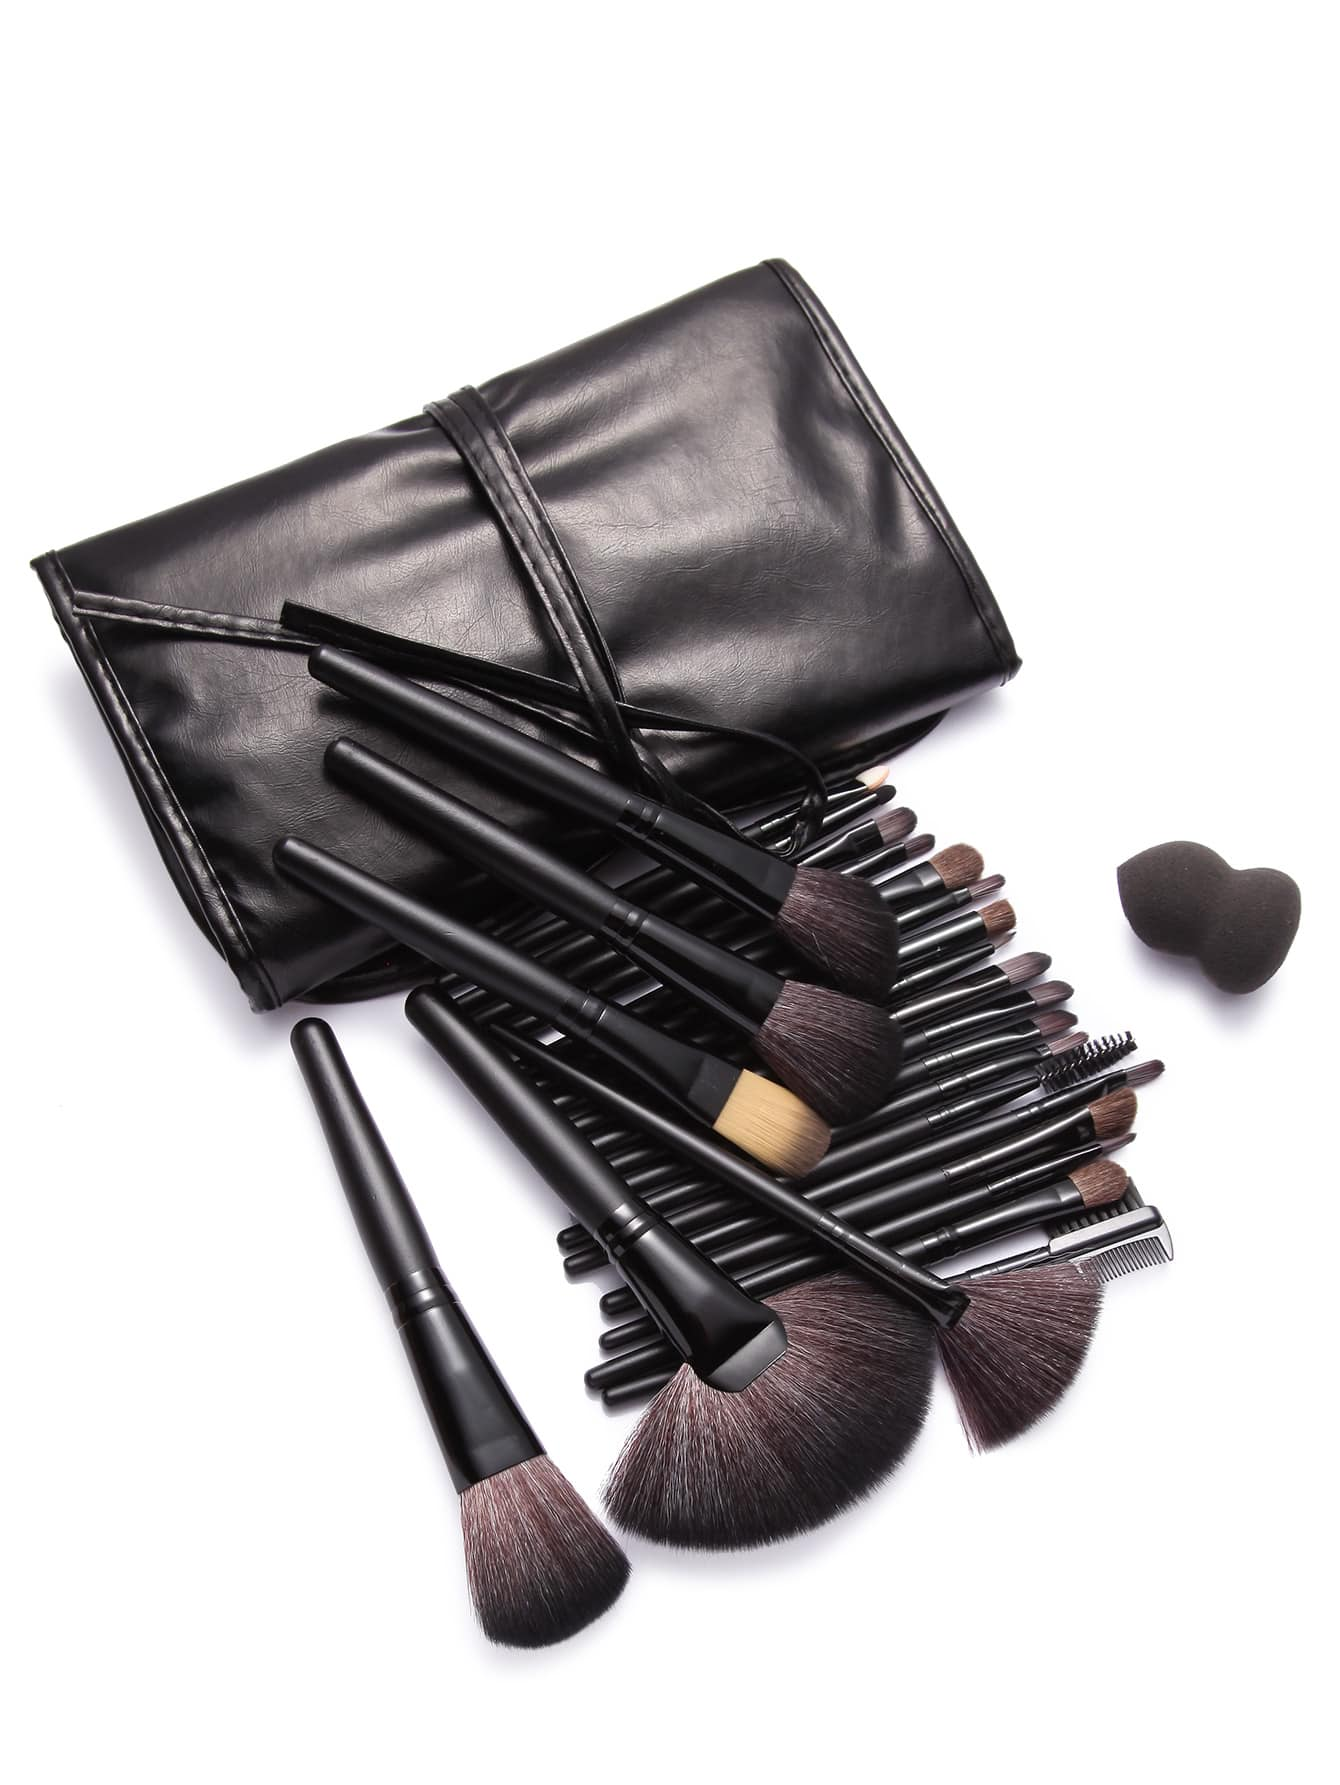 Makeup Brushes And What They Are Used For: 24Pcs Black Professional Makeup Brush Set With Leather Bag